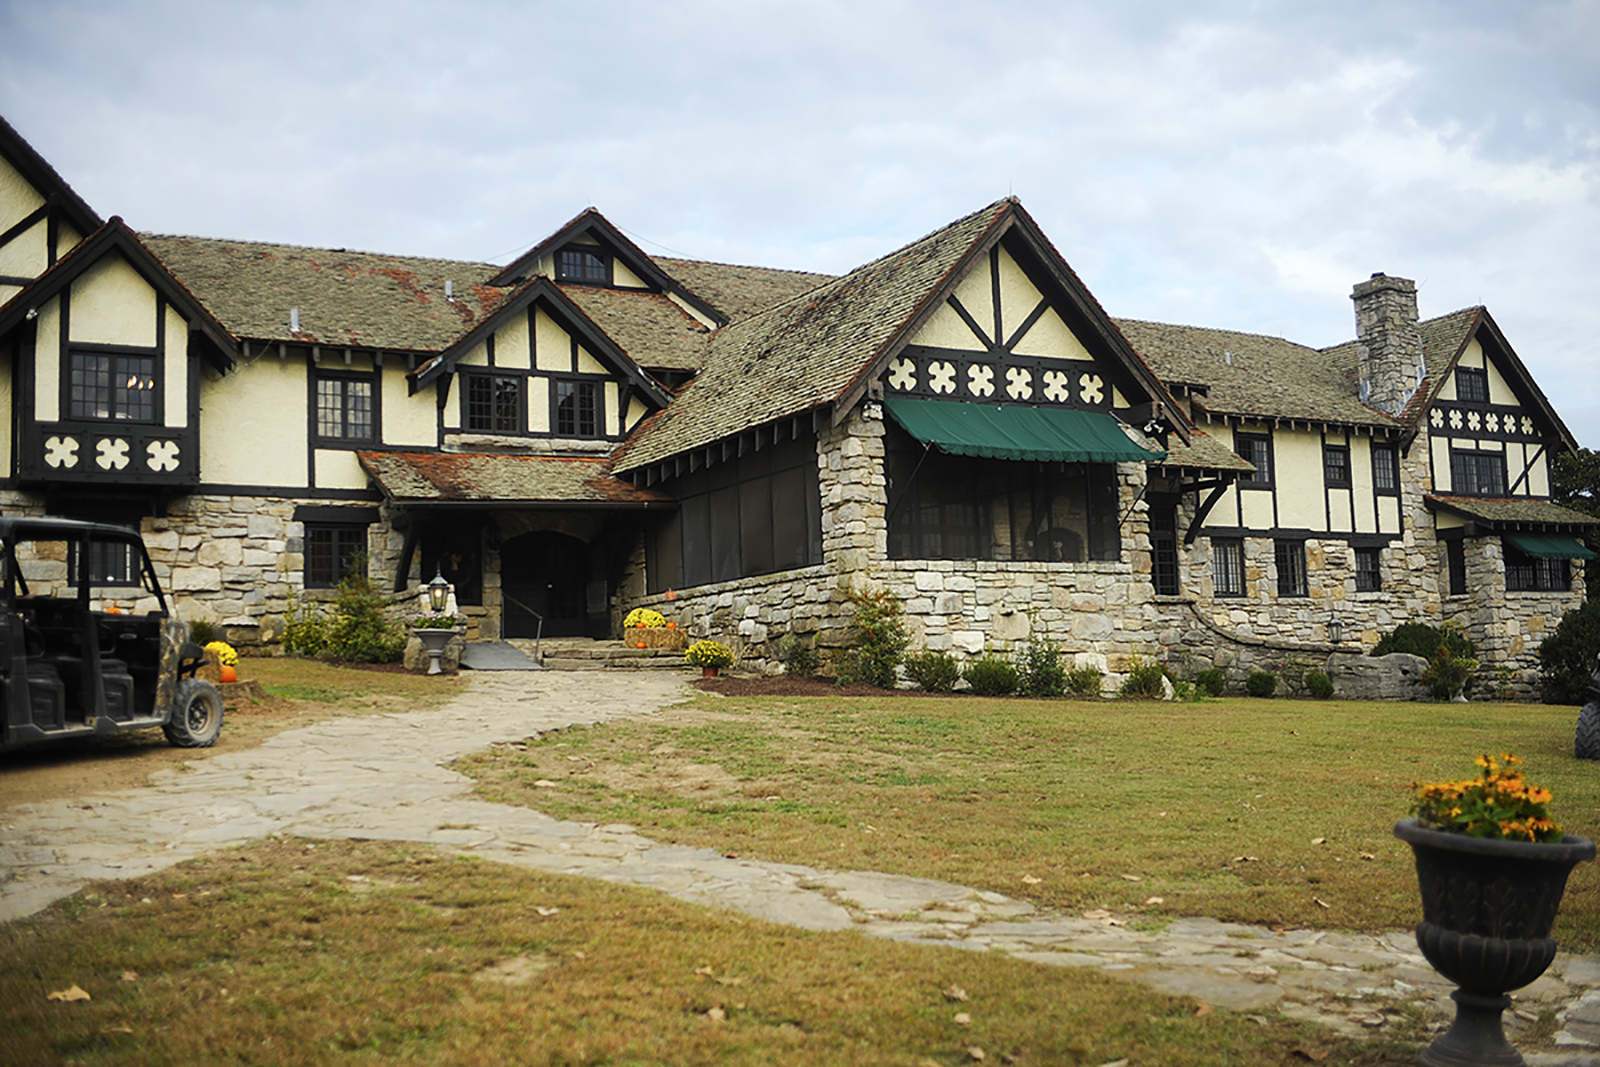 Milky Way manor house with beautiful stone work and dark stained wooden beams and accents.